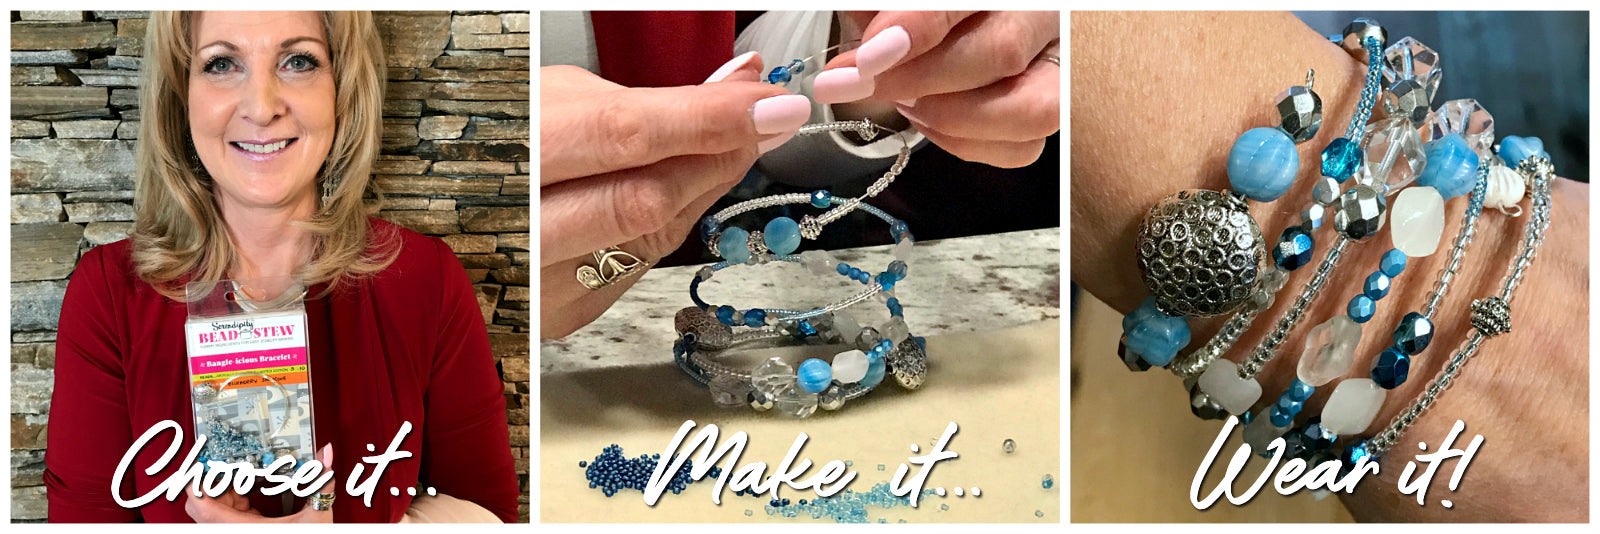 Creating a one-of-a-kind piece of jewelry at Suzie Q Studio's BEAD STEW Parties is as simple as... choose a kit, make it and wear it. No experience is necessary!